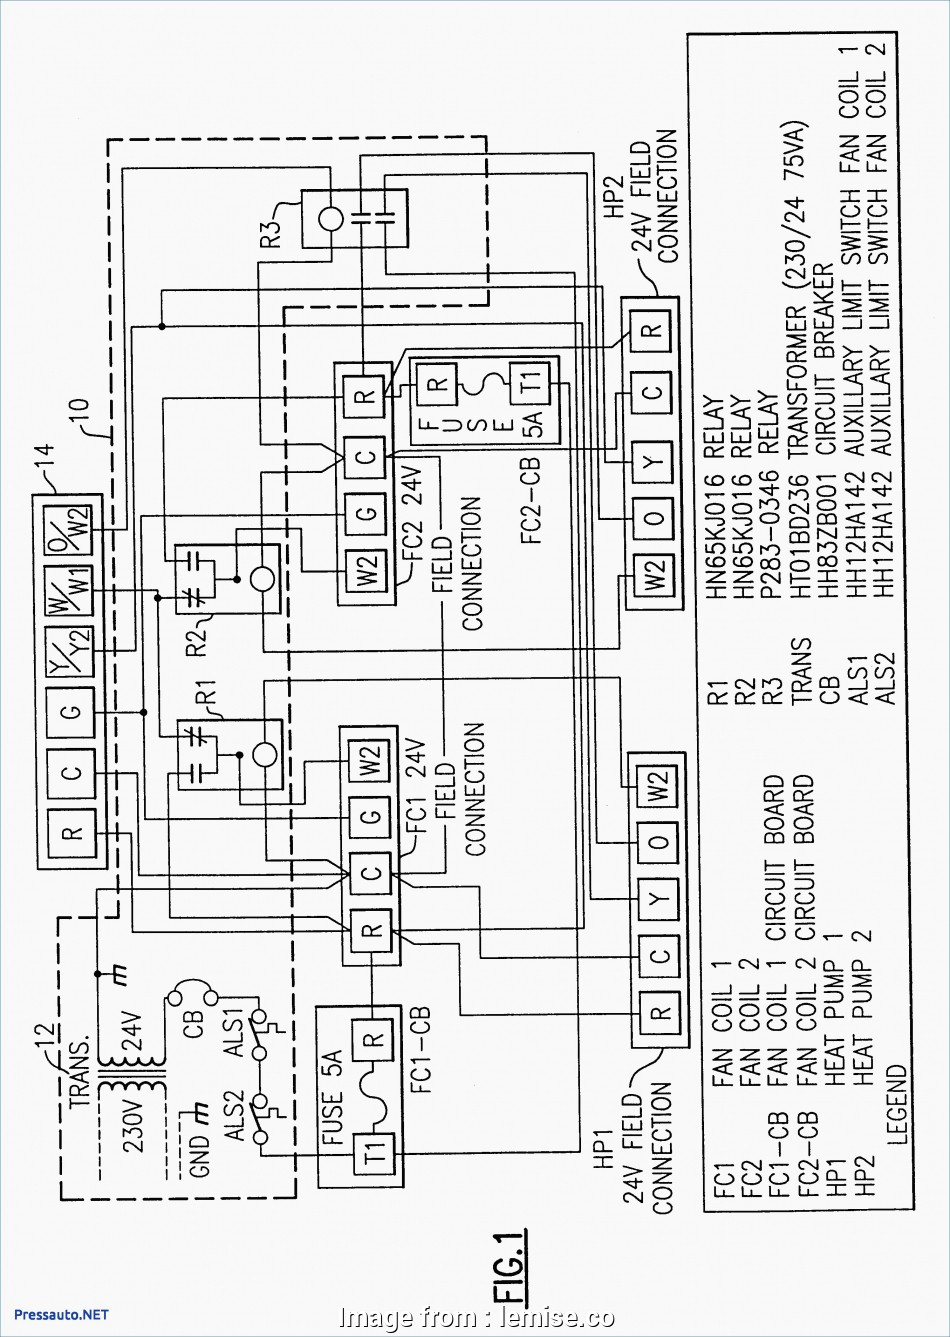 House Thermostat Wiring Diagram Most Wiring Diagram, Old